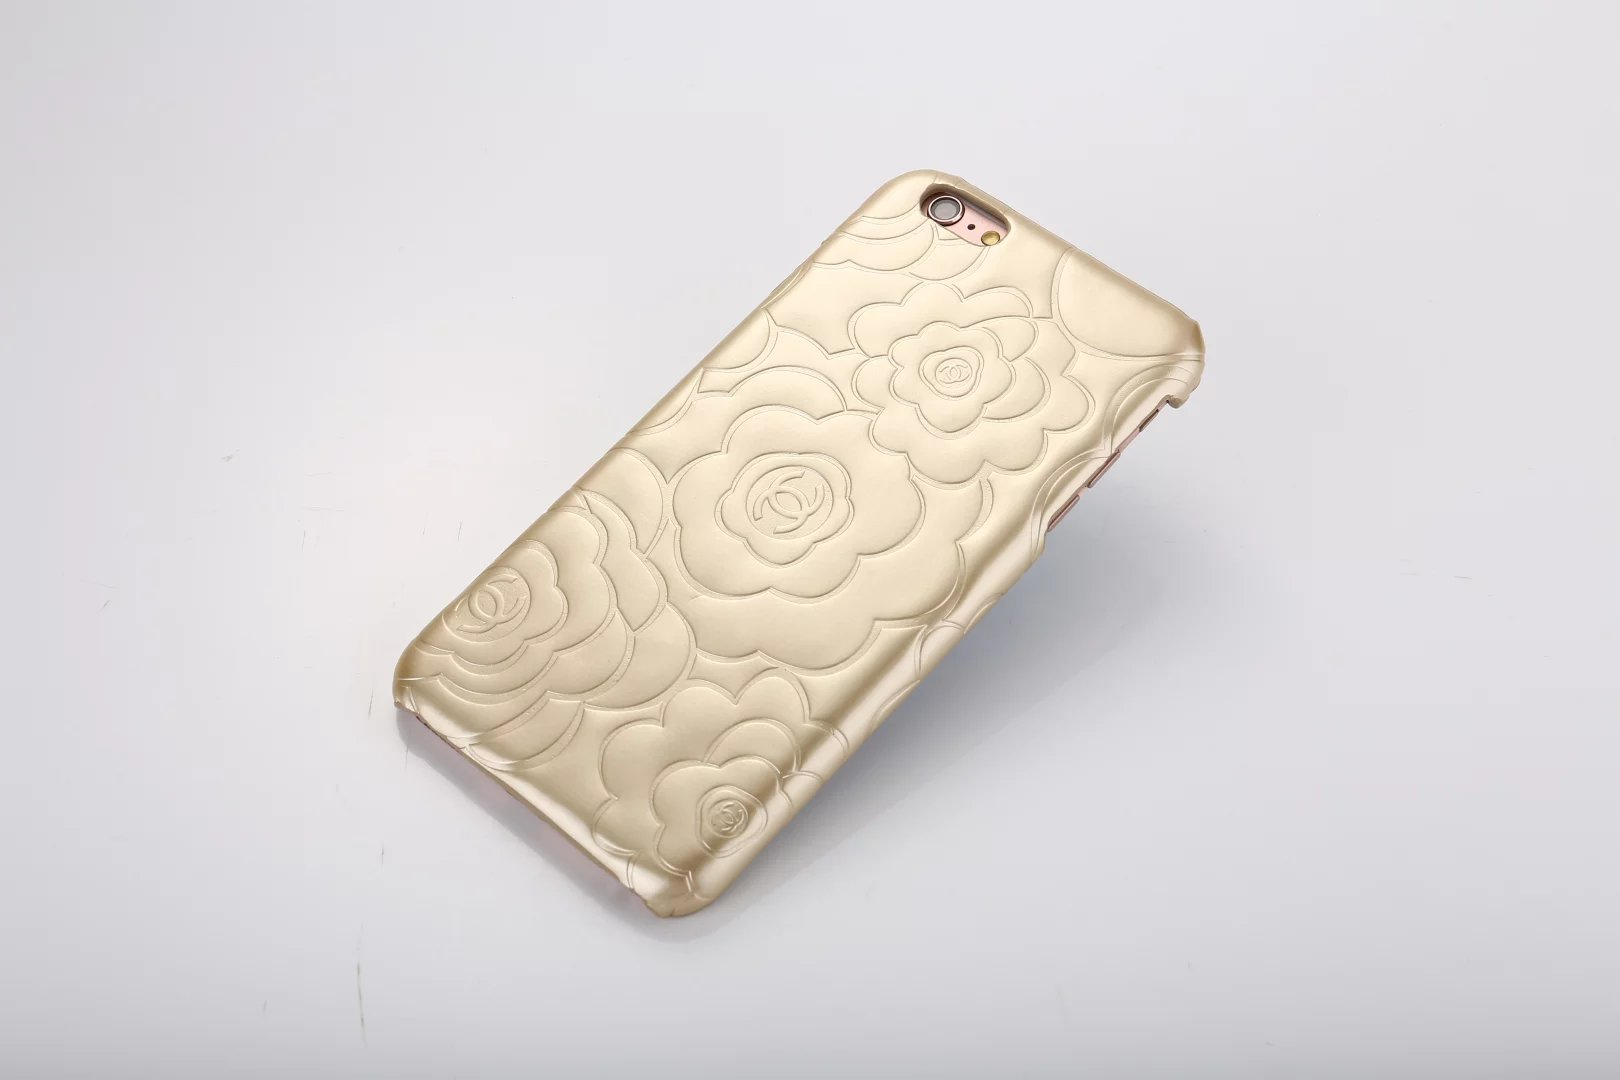 phone cases for a iphone 6 iphone 6 custom cover fashion iphone6 case release of the iphone 6 iphone 6 cases website iphone for s cases bling iphone cases apple 6 news iphone 6 case art